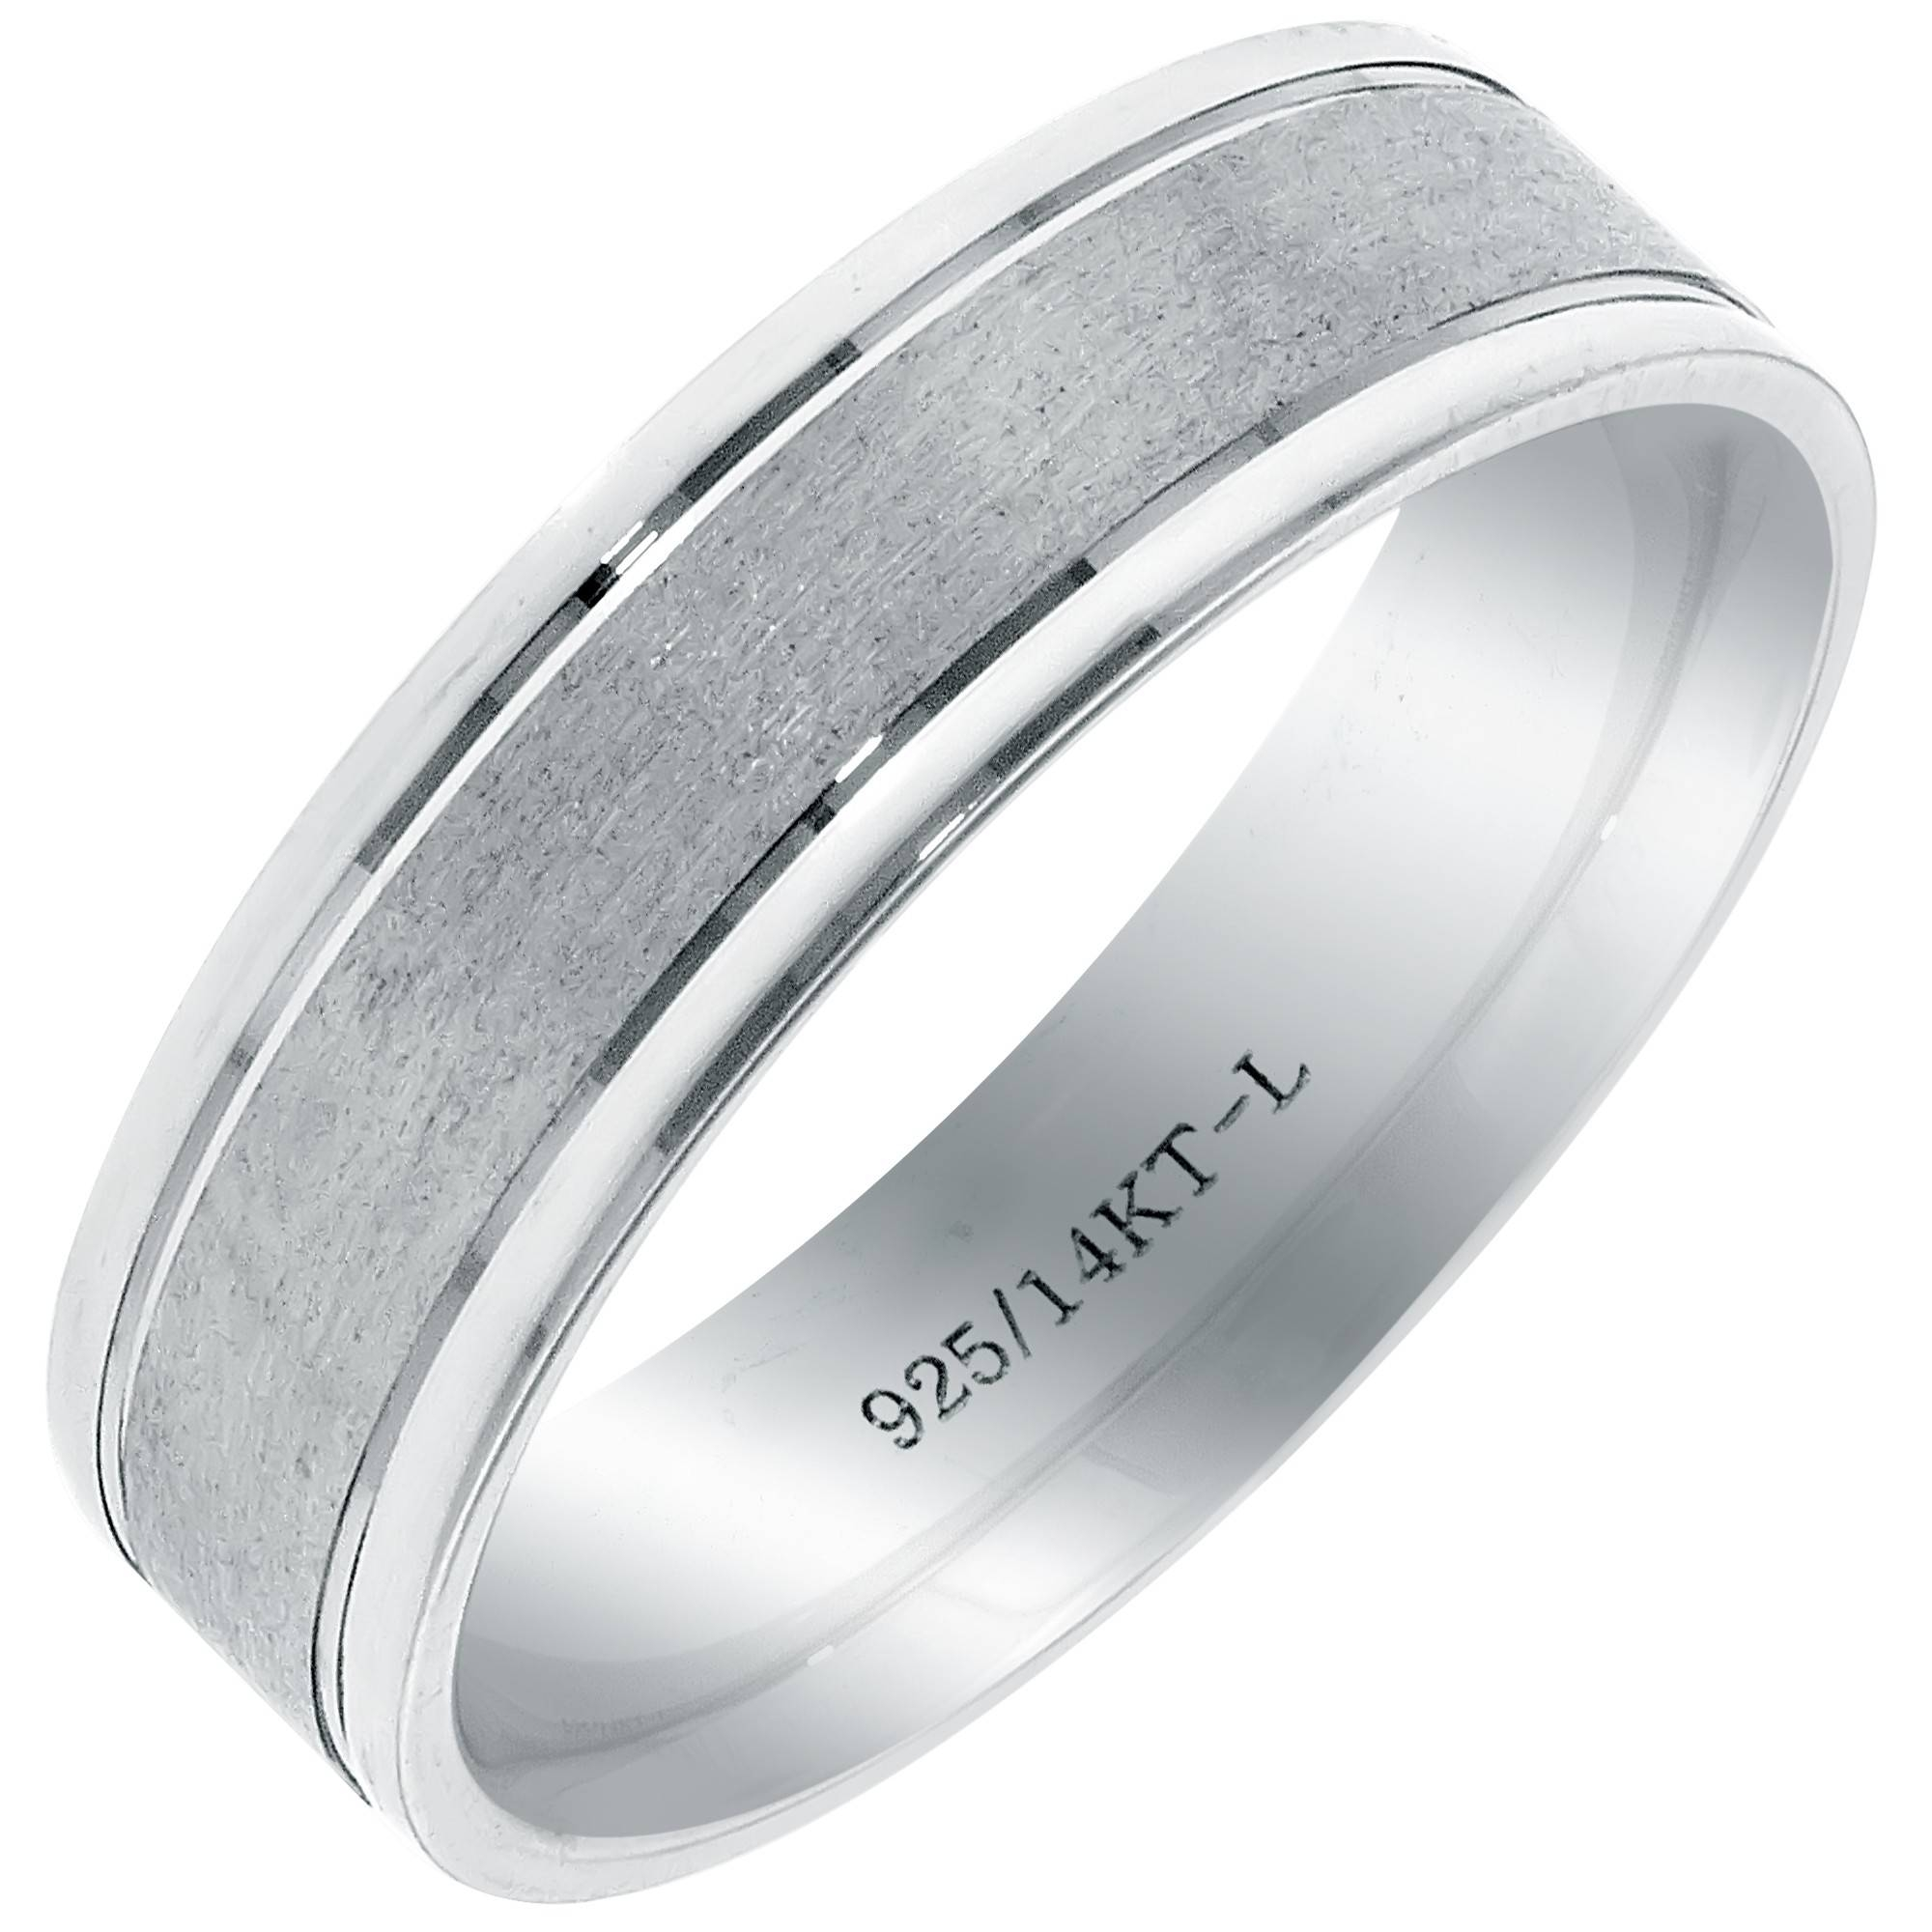 Bond2 Mens Wedding Band In 14kt White Gold And Sterling Silver (6mm) Pertaining To Mens Sterling Silver Wedding Bands (View 2 of 15)